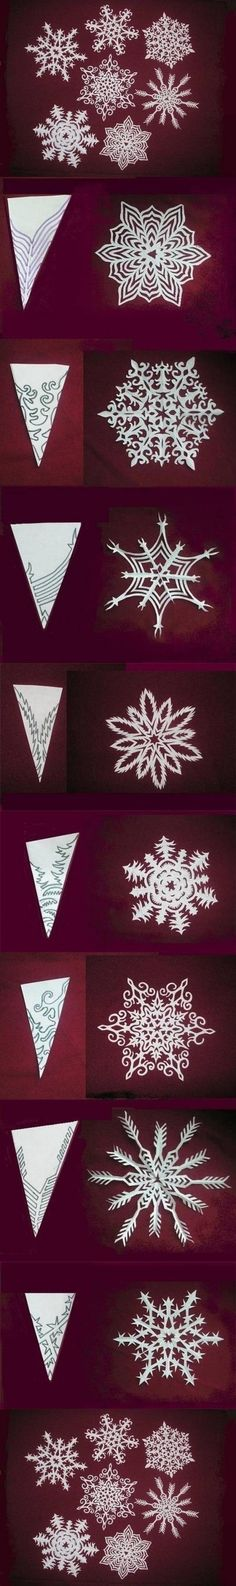 Paper Snowflake Patterns! So Pretty & Fun To Do! ❄️